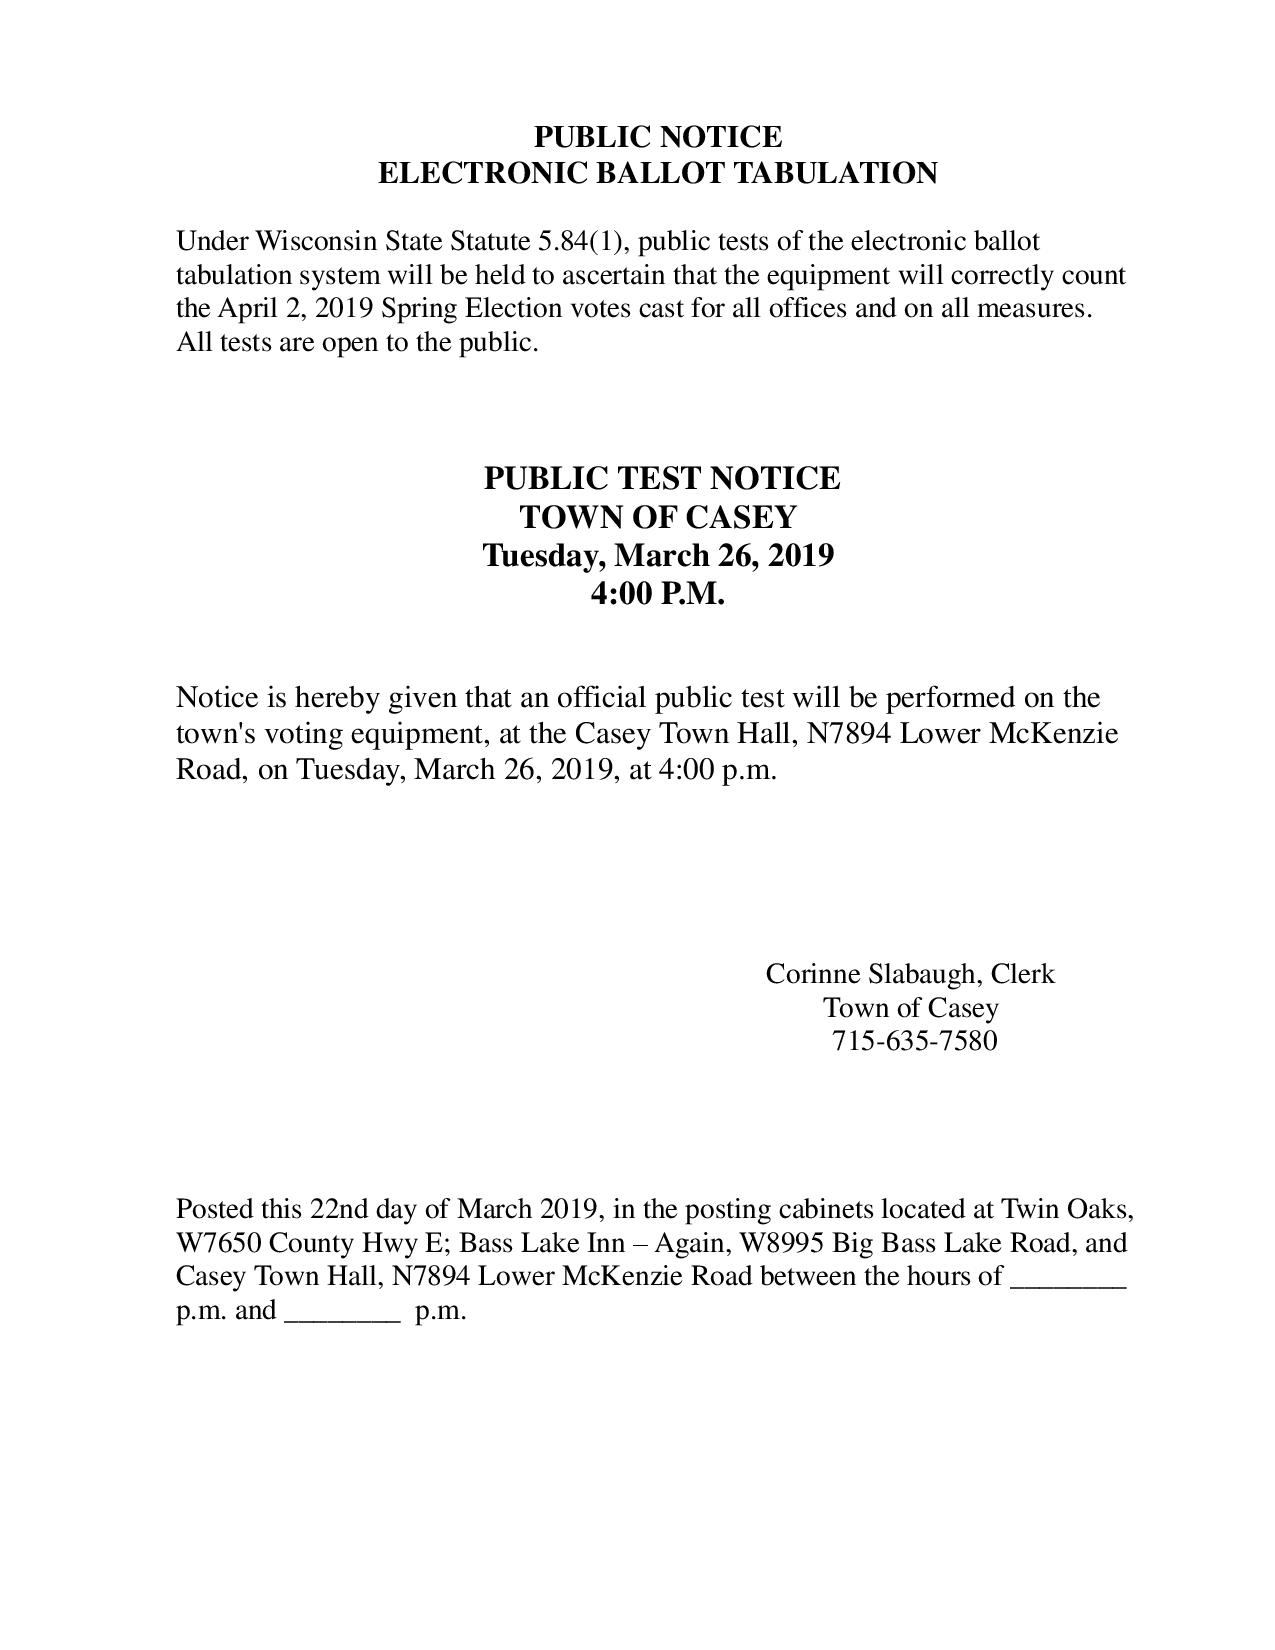 townweb Archive | Town of Casey, Washburn County, Wisconsin